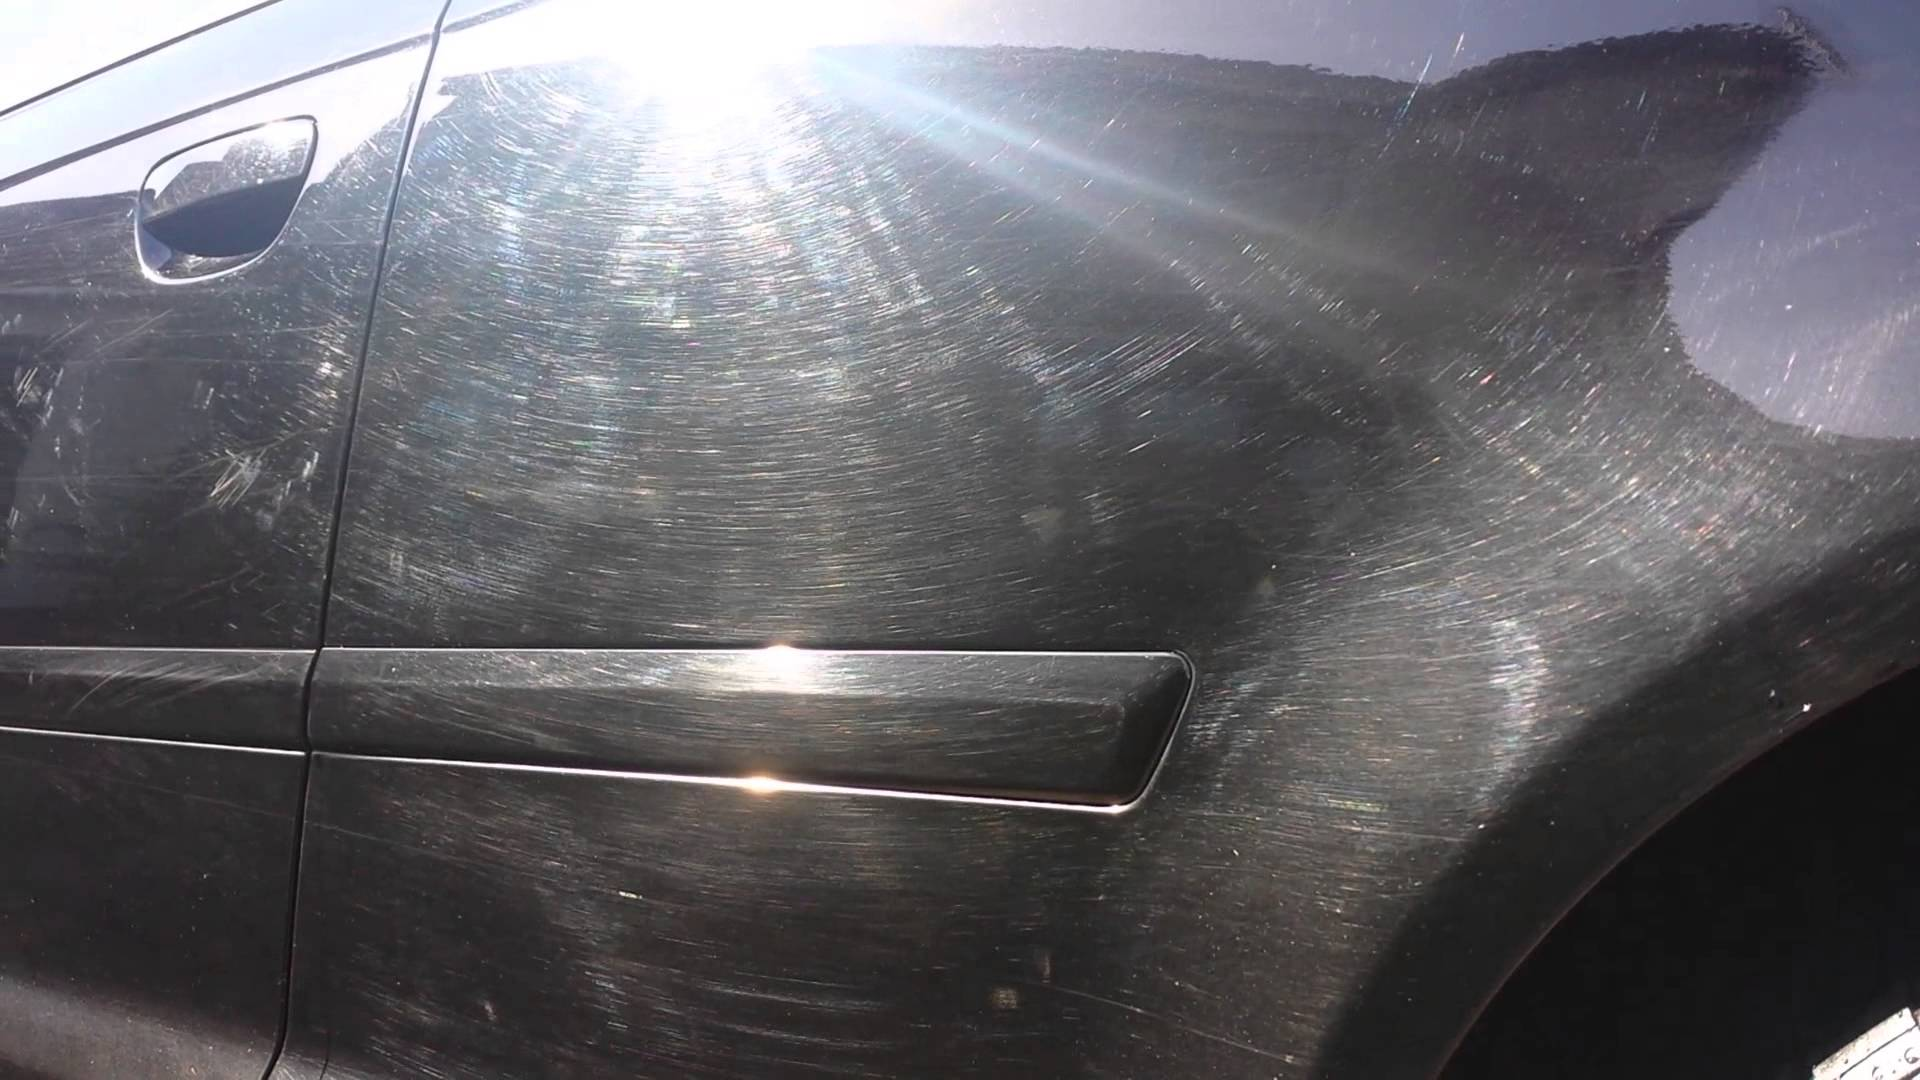 car wash swirl marks